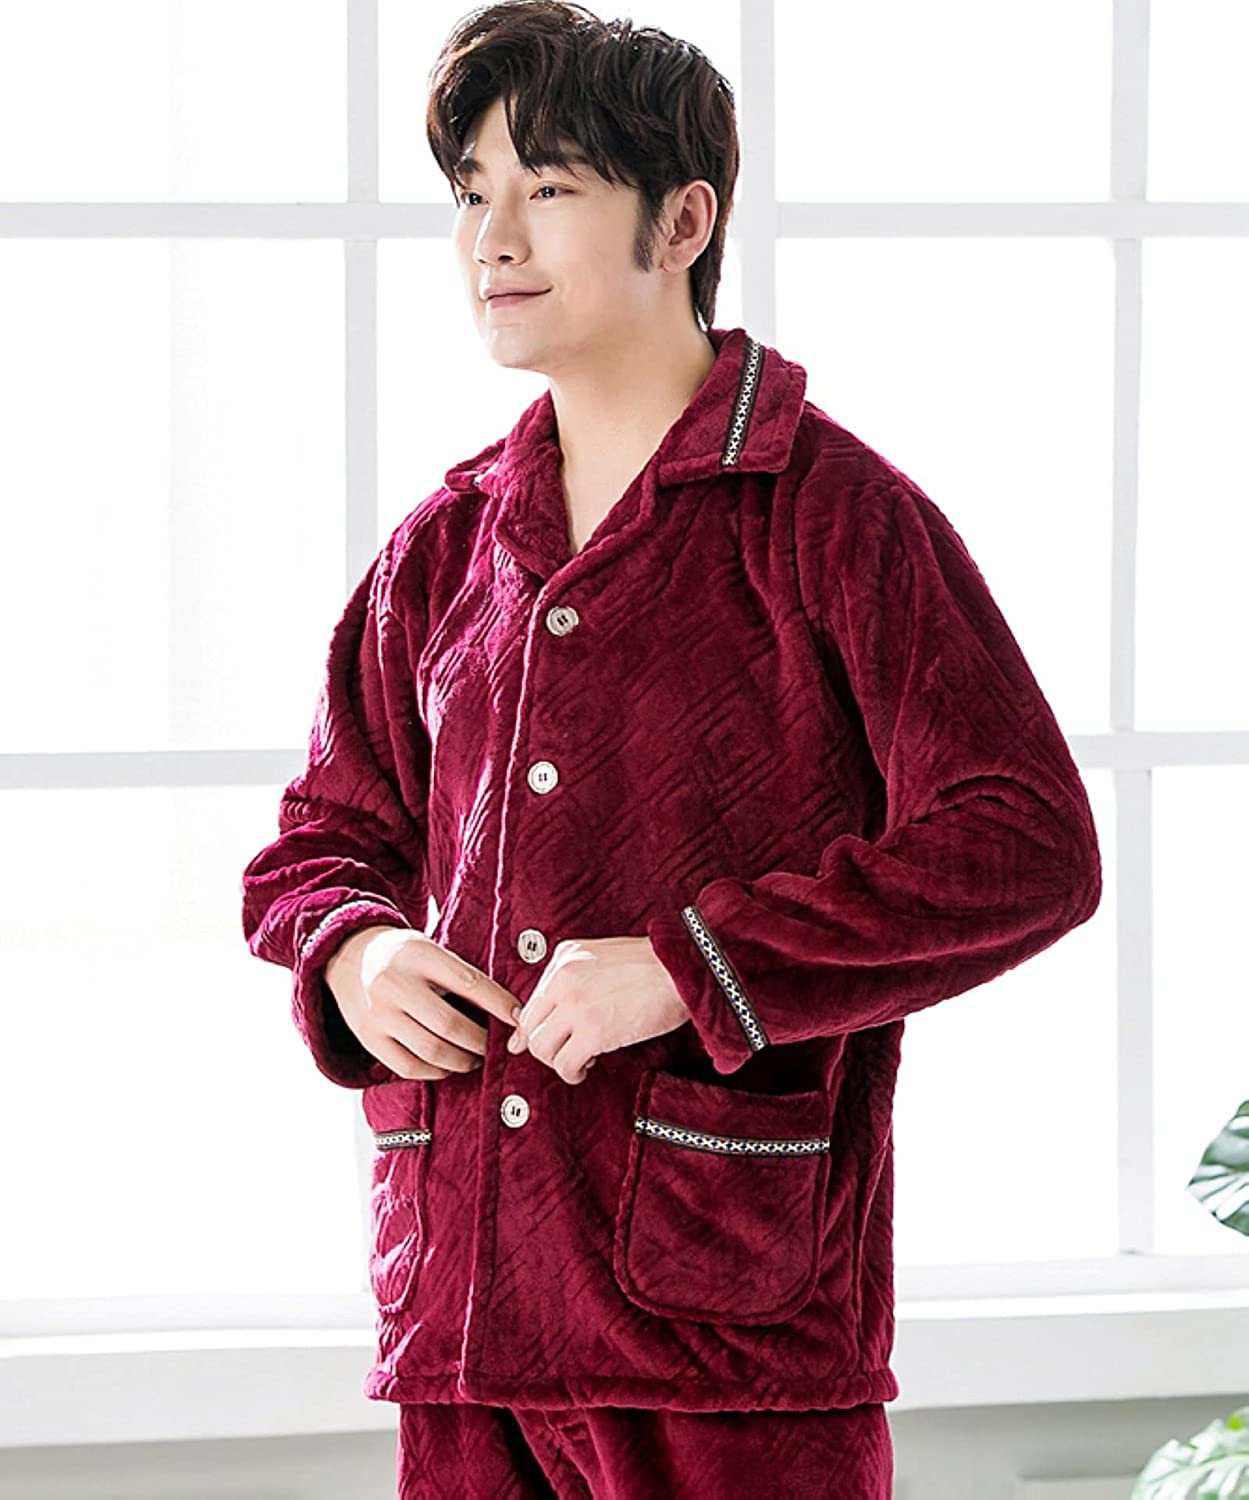 WIITON Men's Solid Color Long-Sleeved Flannel Plus Size Thick Coral Fleece Homewear Pajamas Set